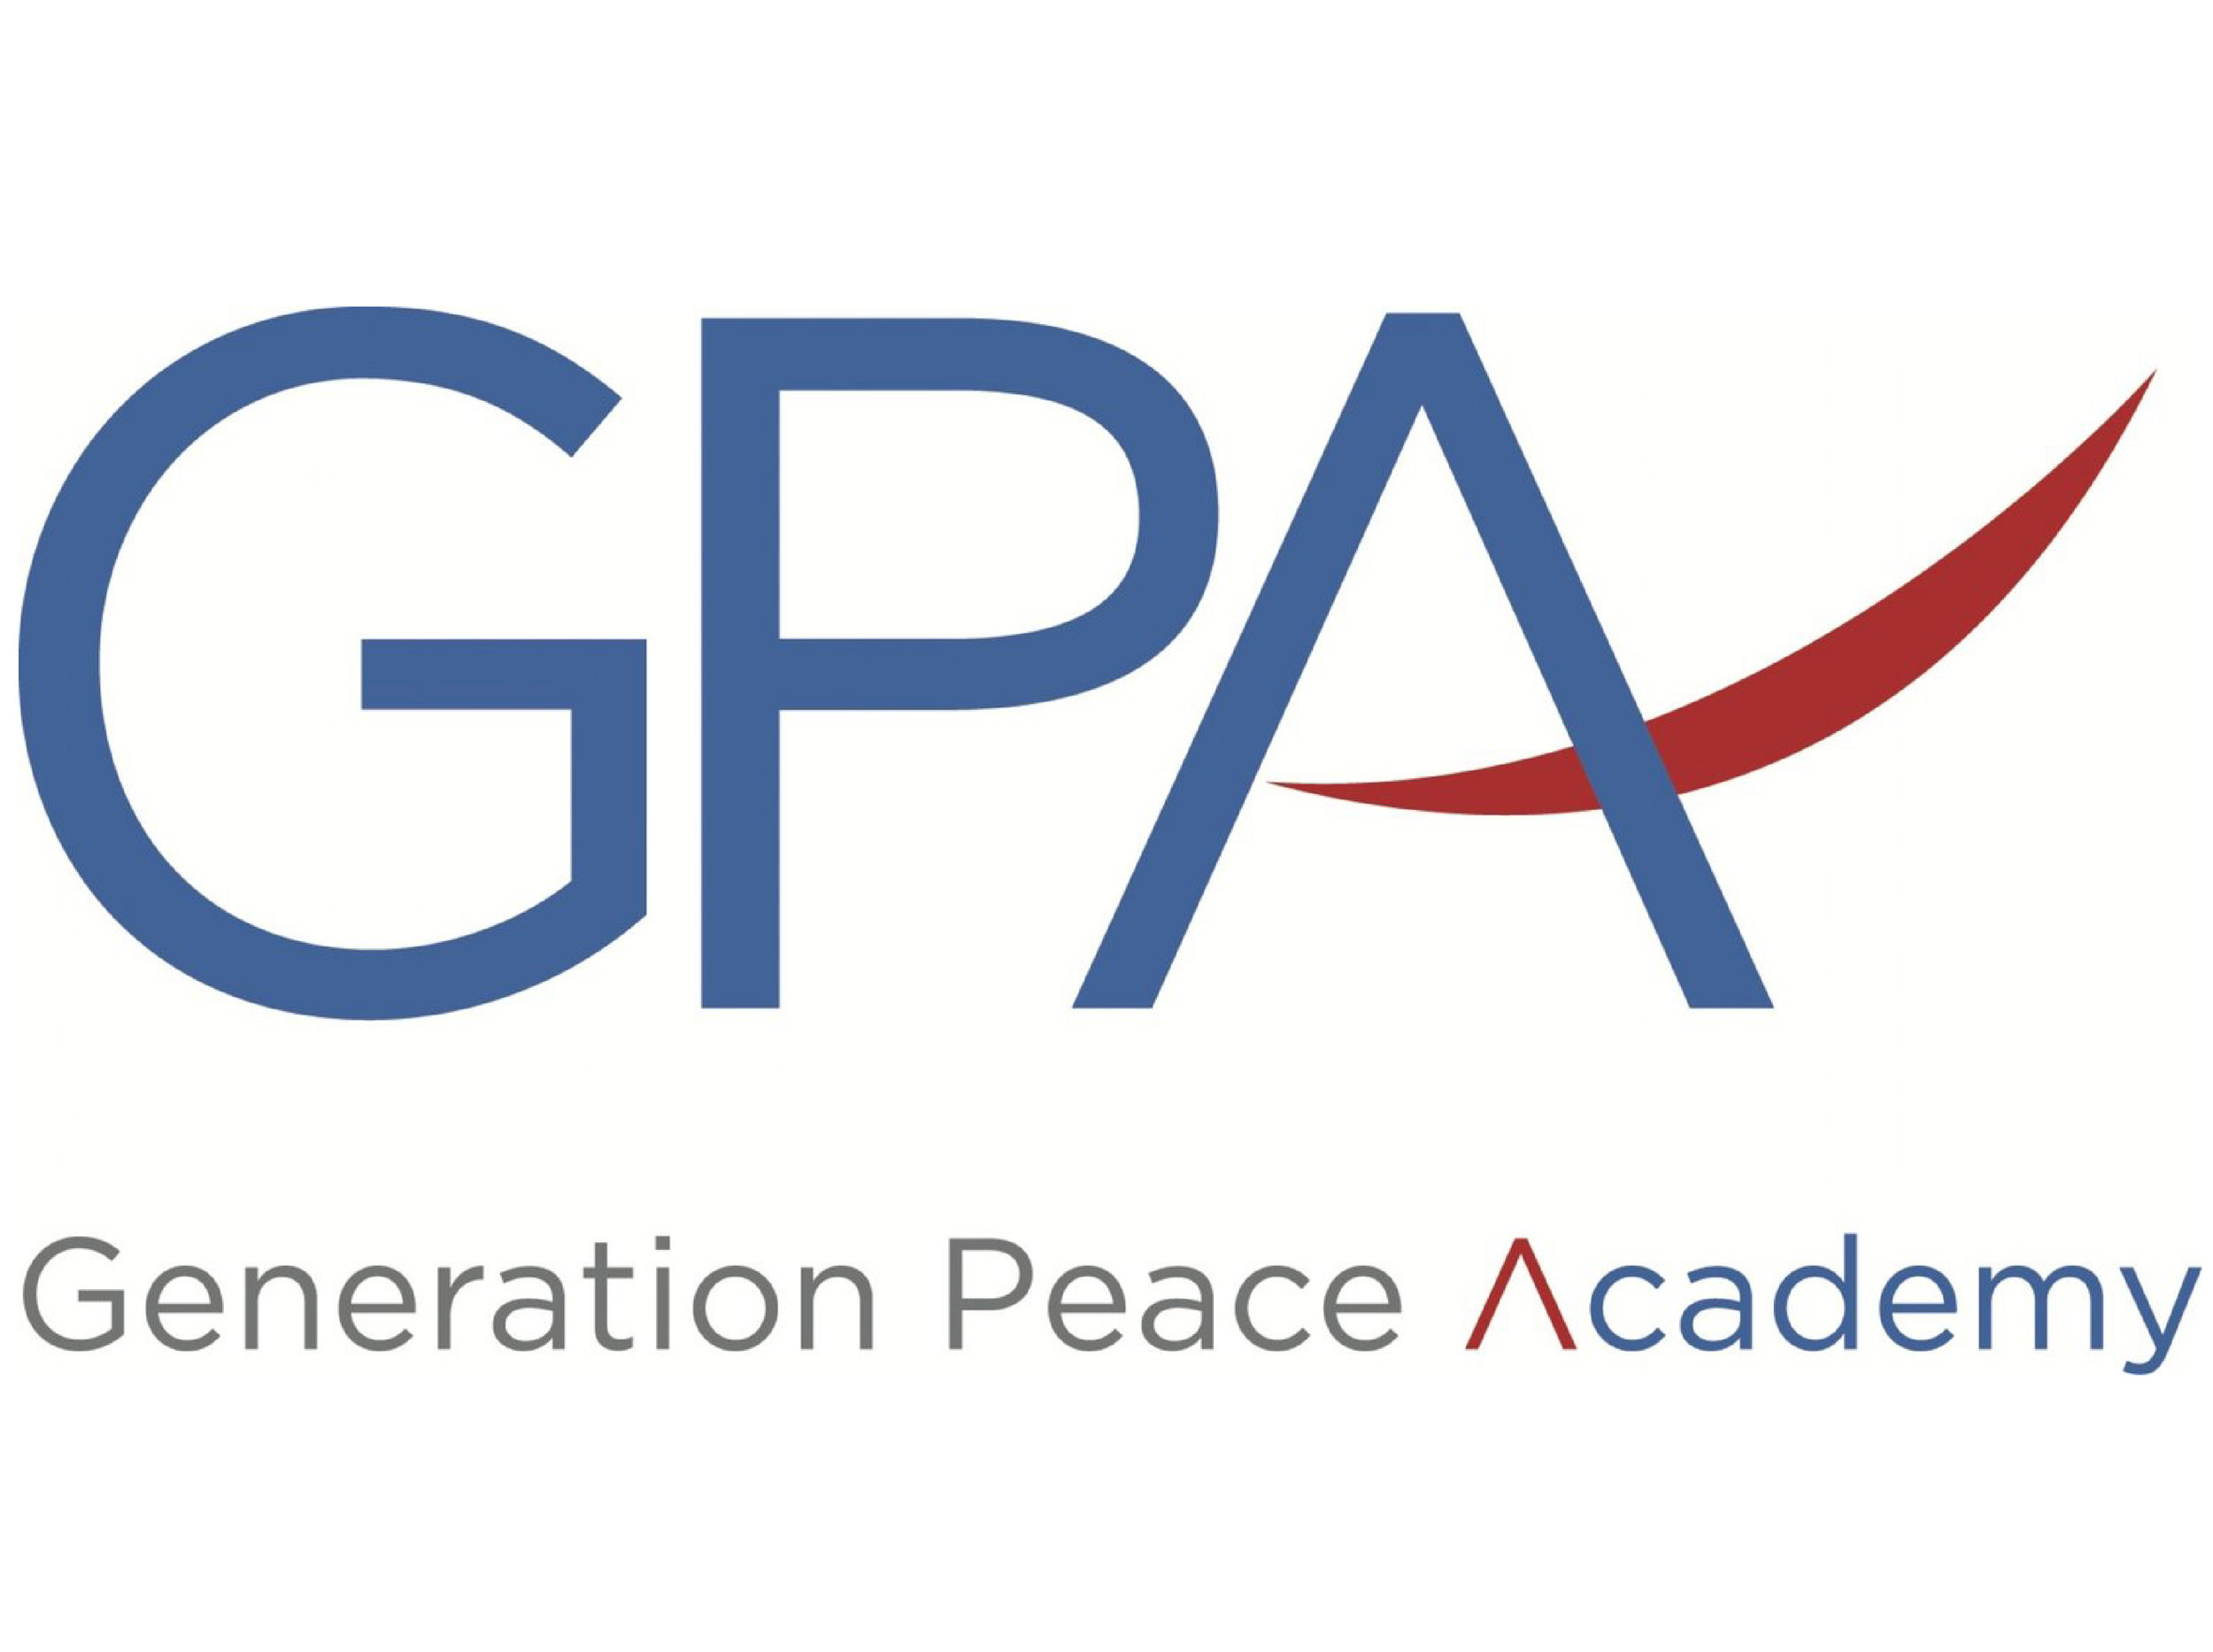 Generation Peace Academy  - THE GENERATION PEACE ACADEMY (GPA) IS A 501C-3 NON-PROFIT SUBSIDIARY ORGANIZATION OF THE FAMILY FEDERATION FOR WORLD PEACE AND UNIFICATION.  WE STRIVE TO HELP BUILD A BETTER WORLD BY PREPARING THE LEADERS OF TOMORROW.